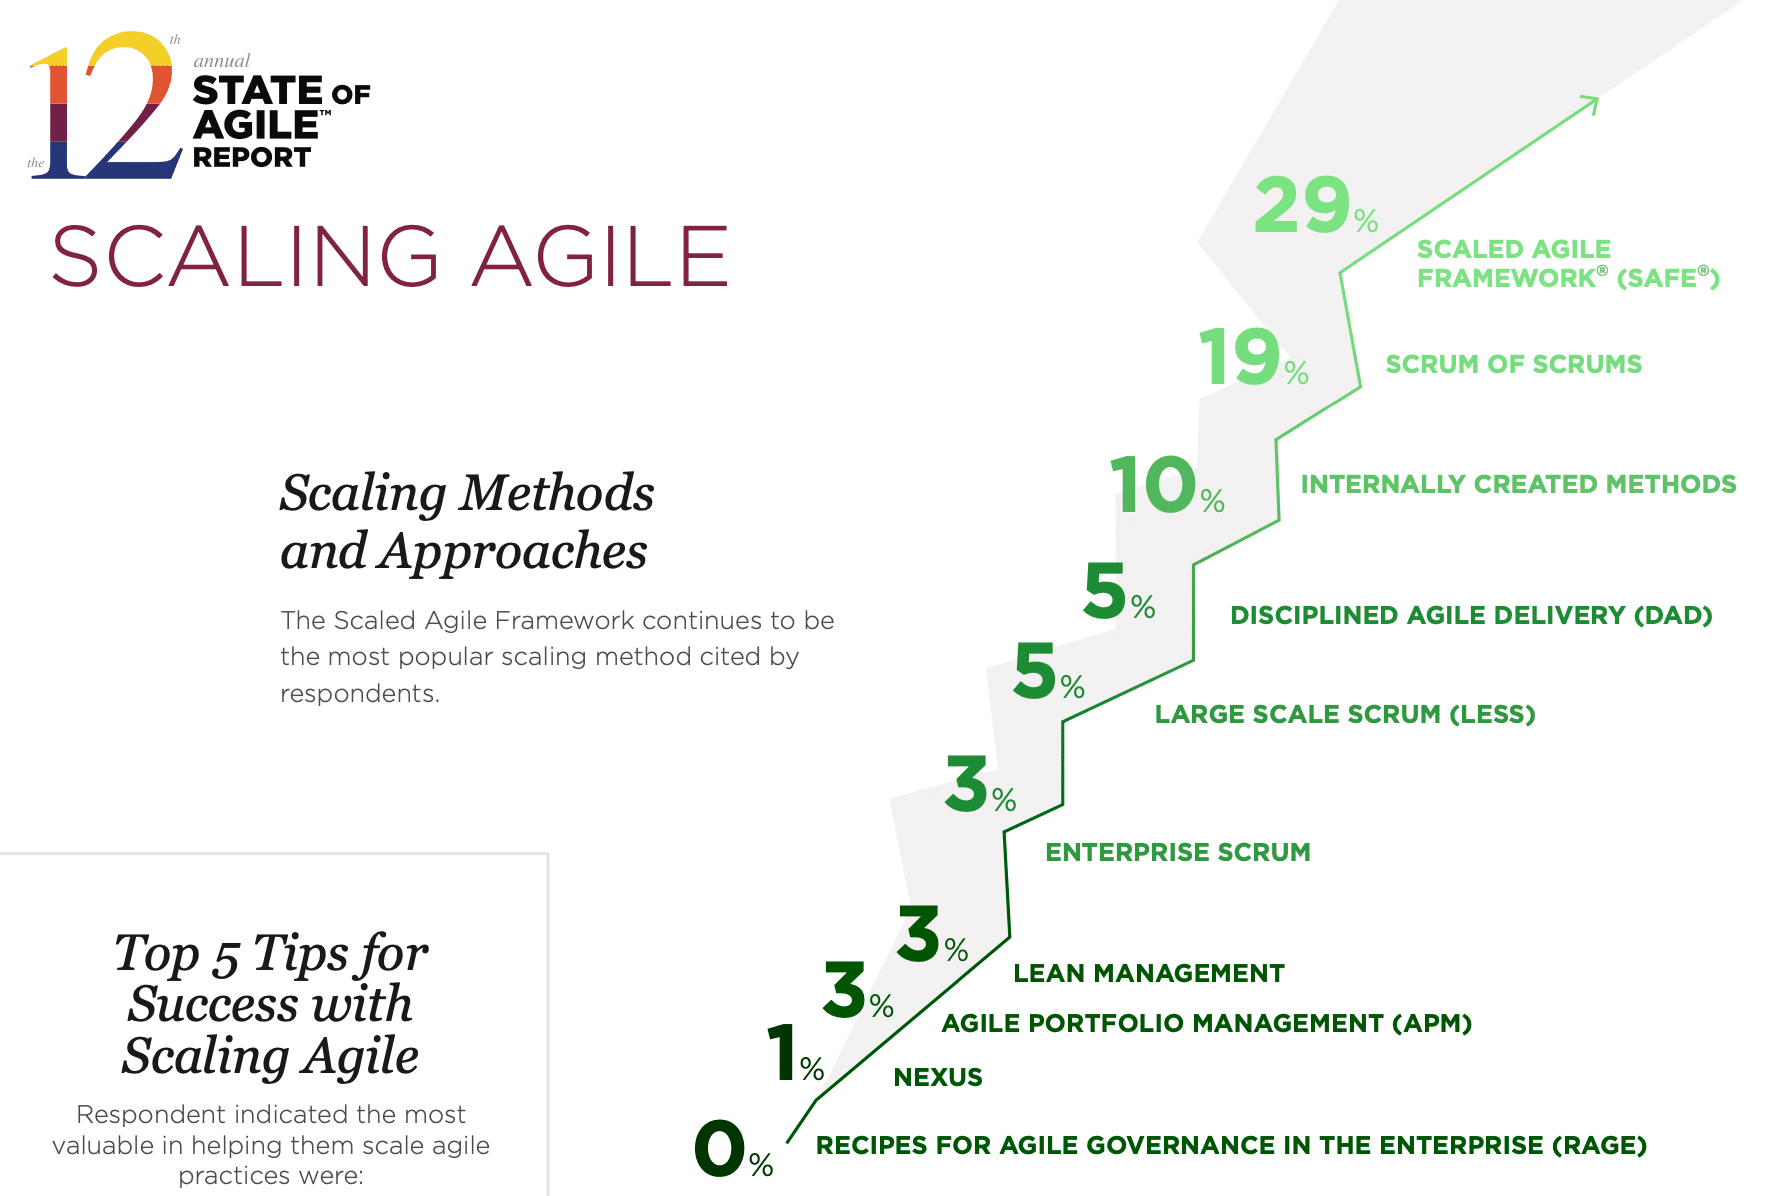 Agile Scaling Approaches from Collabnet VersionOne 2017 Annual State of Agile Report